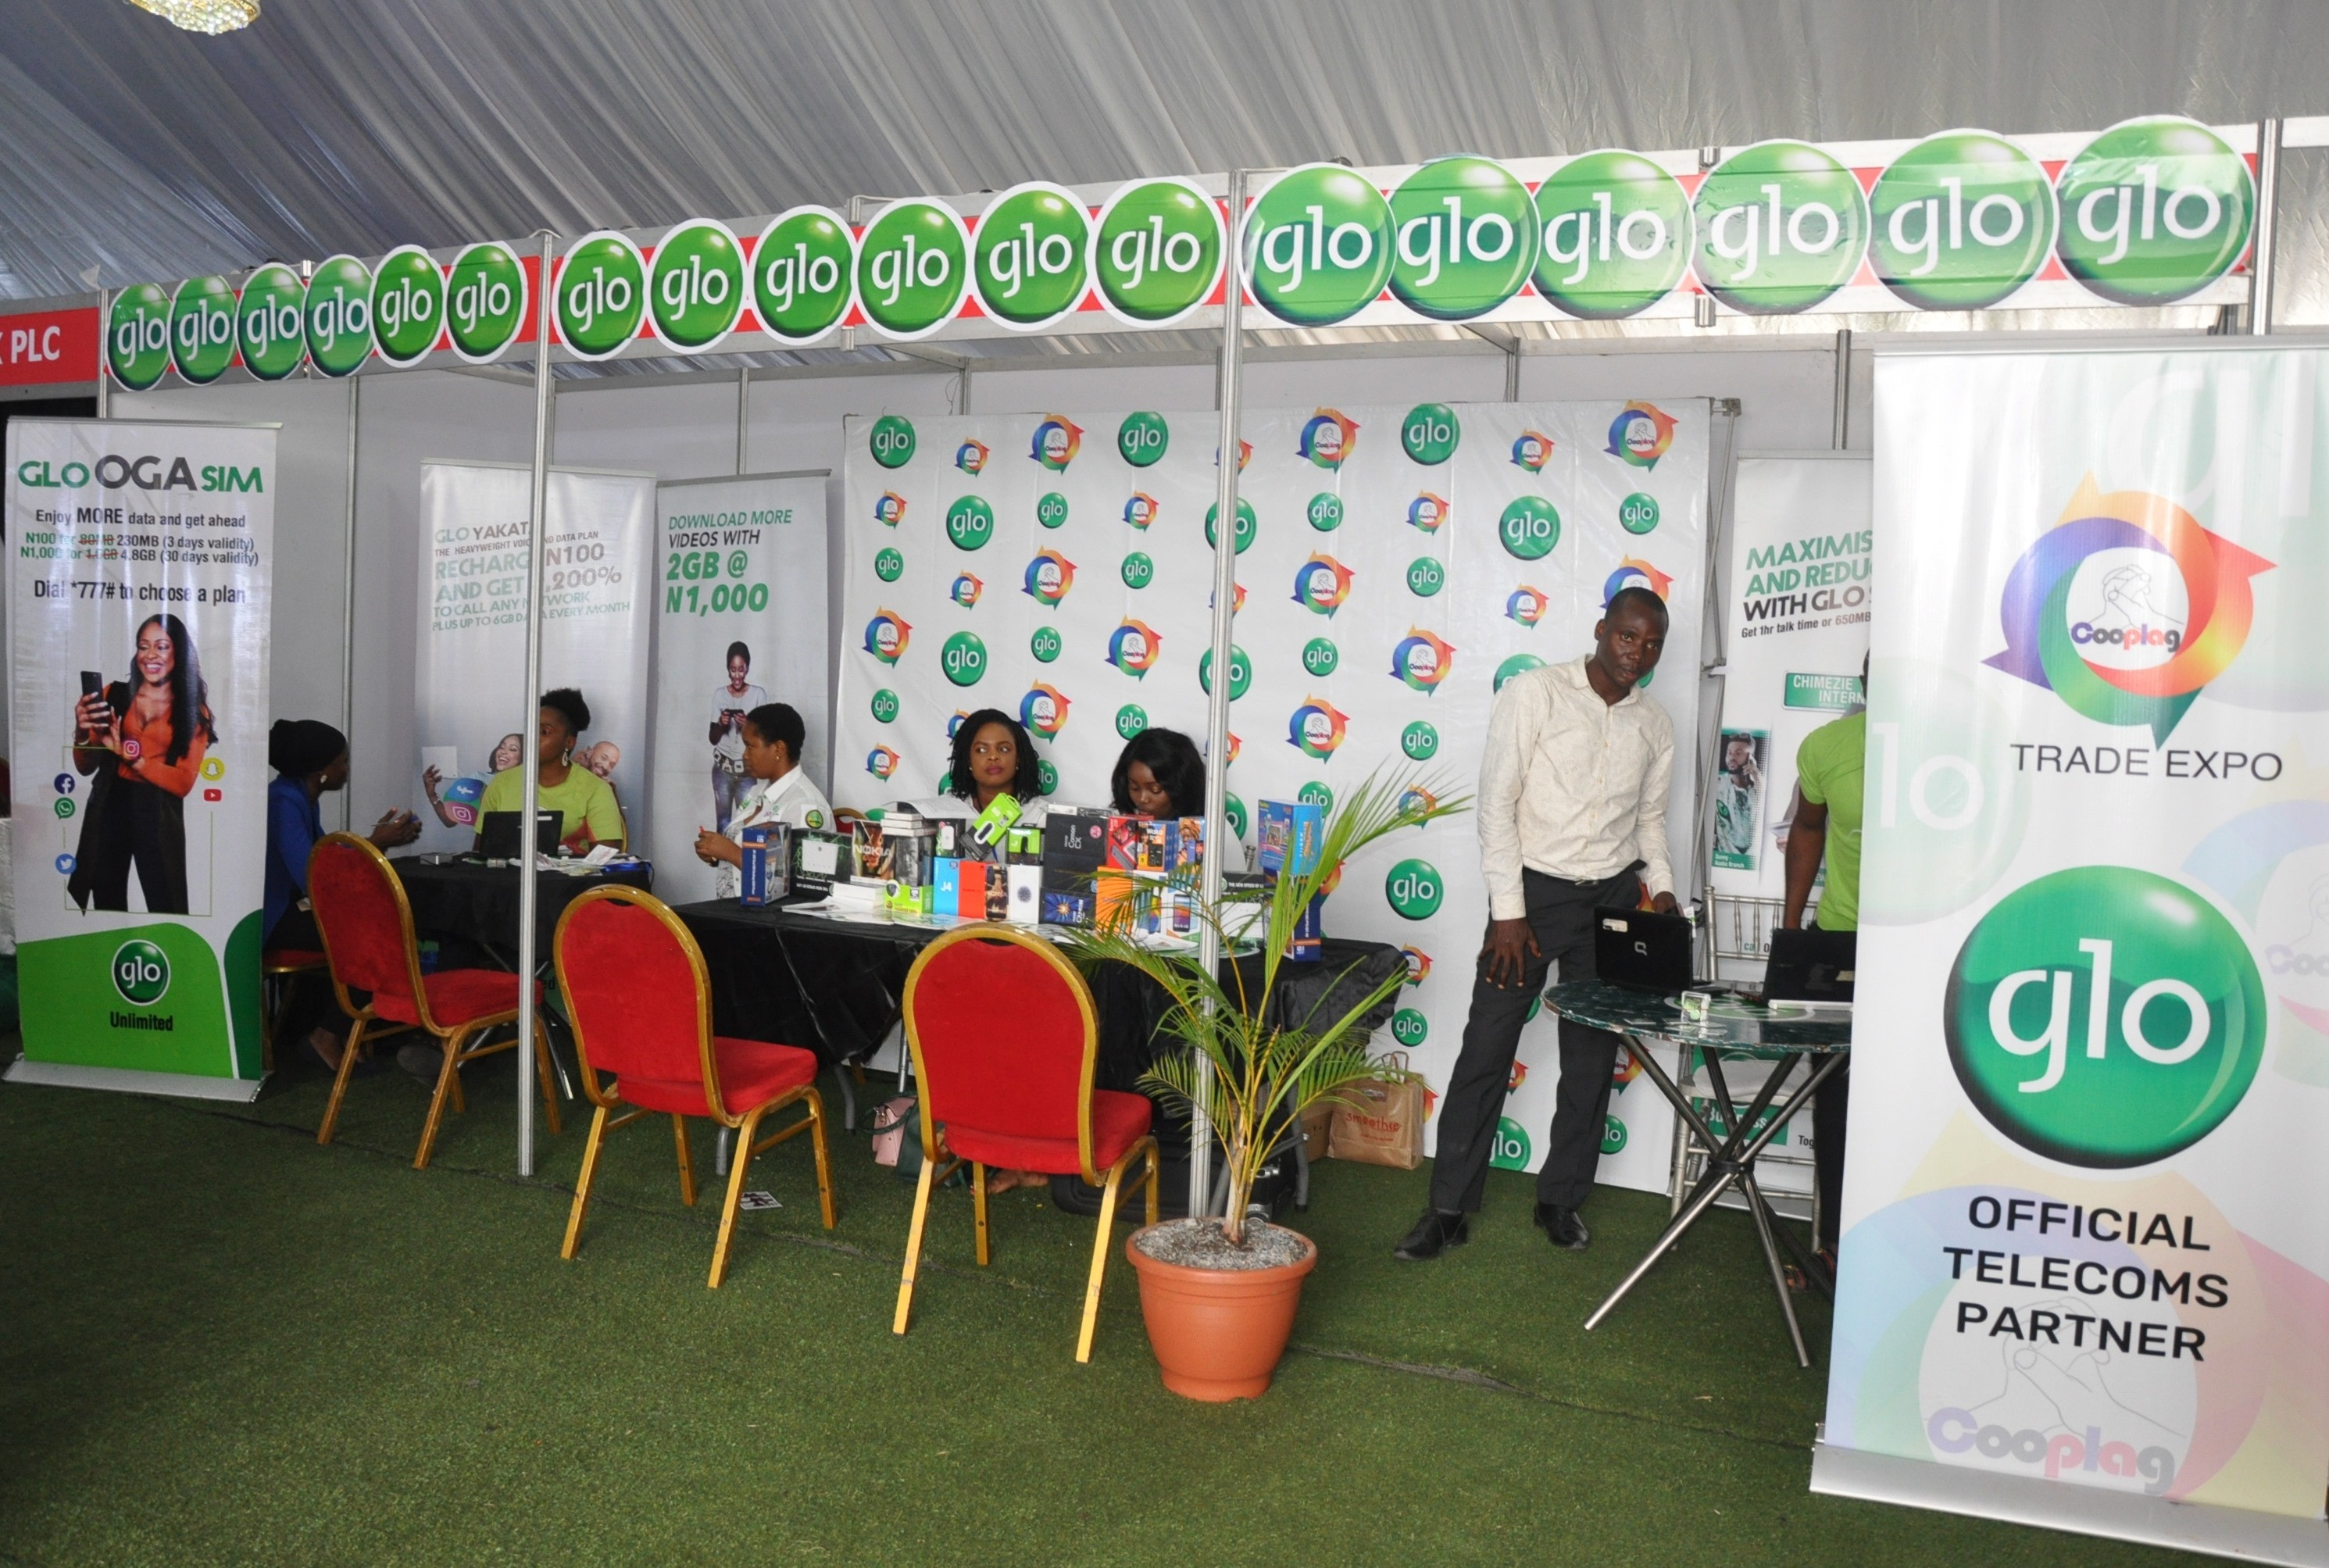 Glo excites visitors at Shell Trade Expo